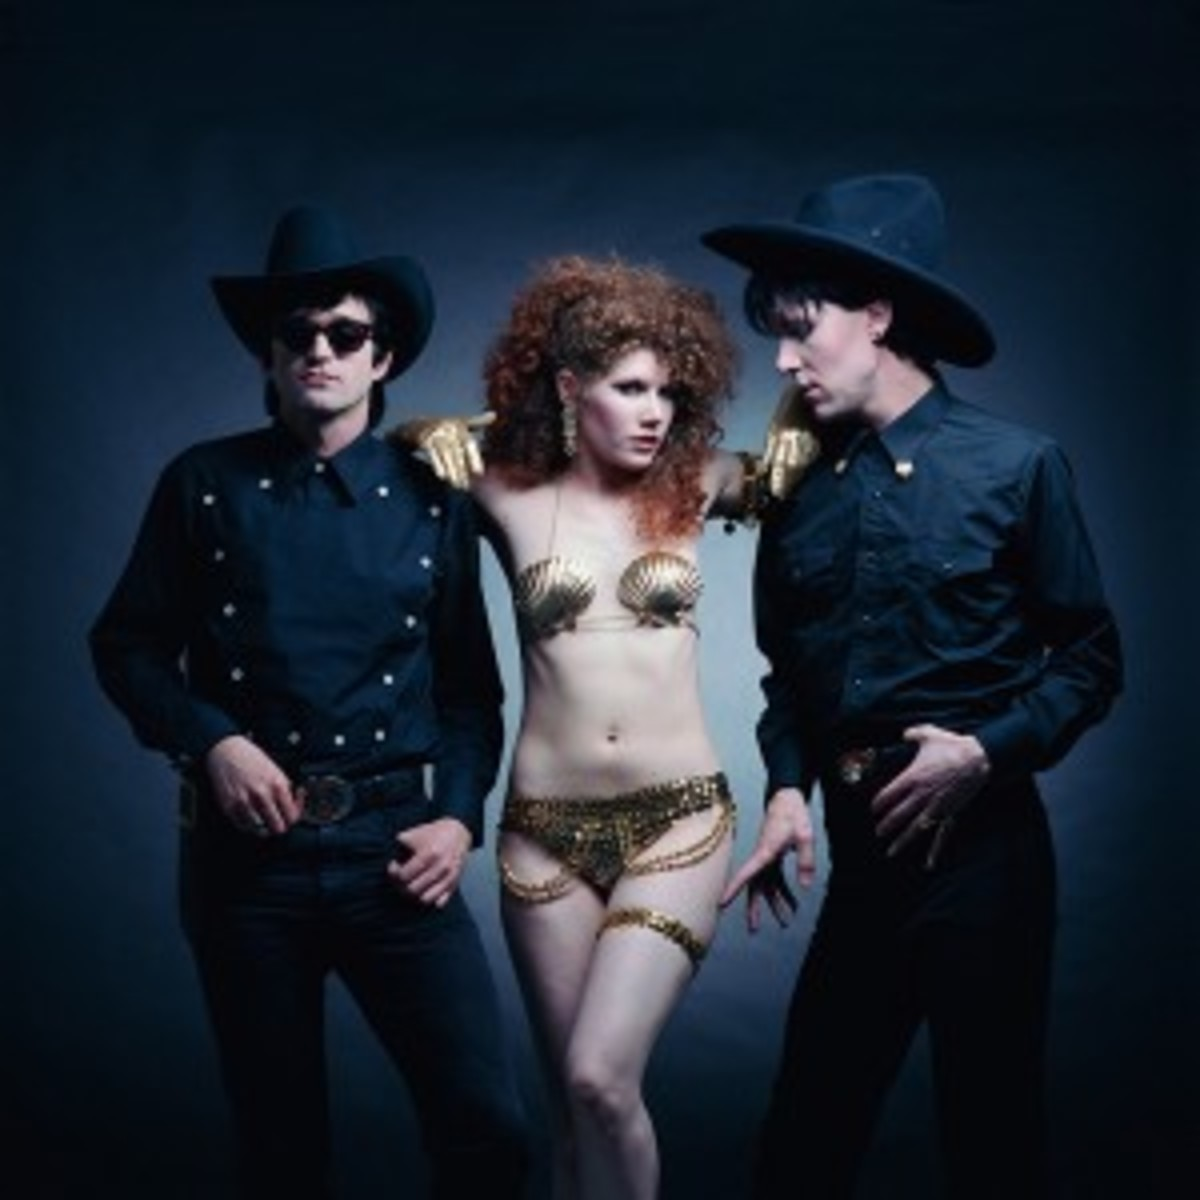 The Cramps Poison Ivy Rorschach and Lux Interior